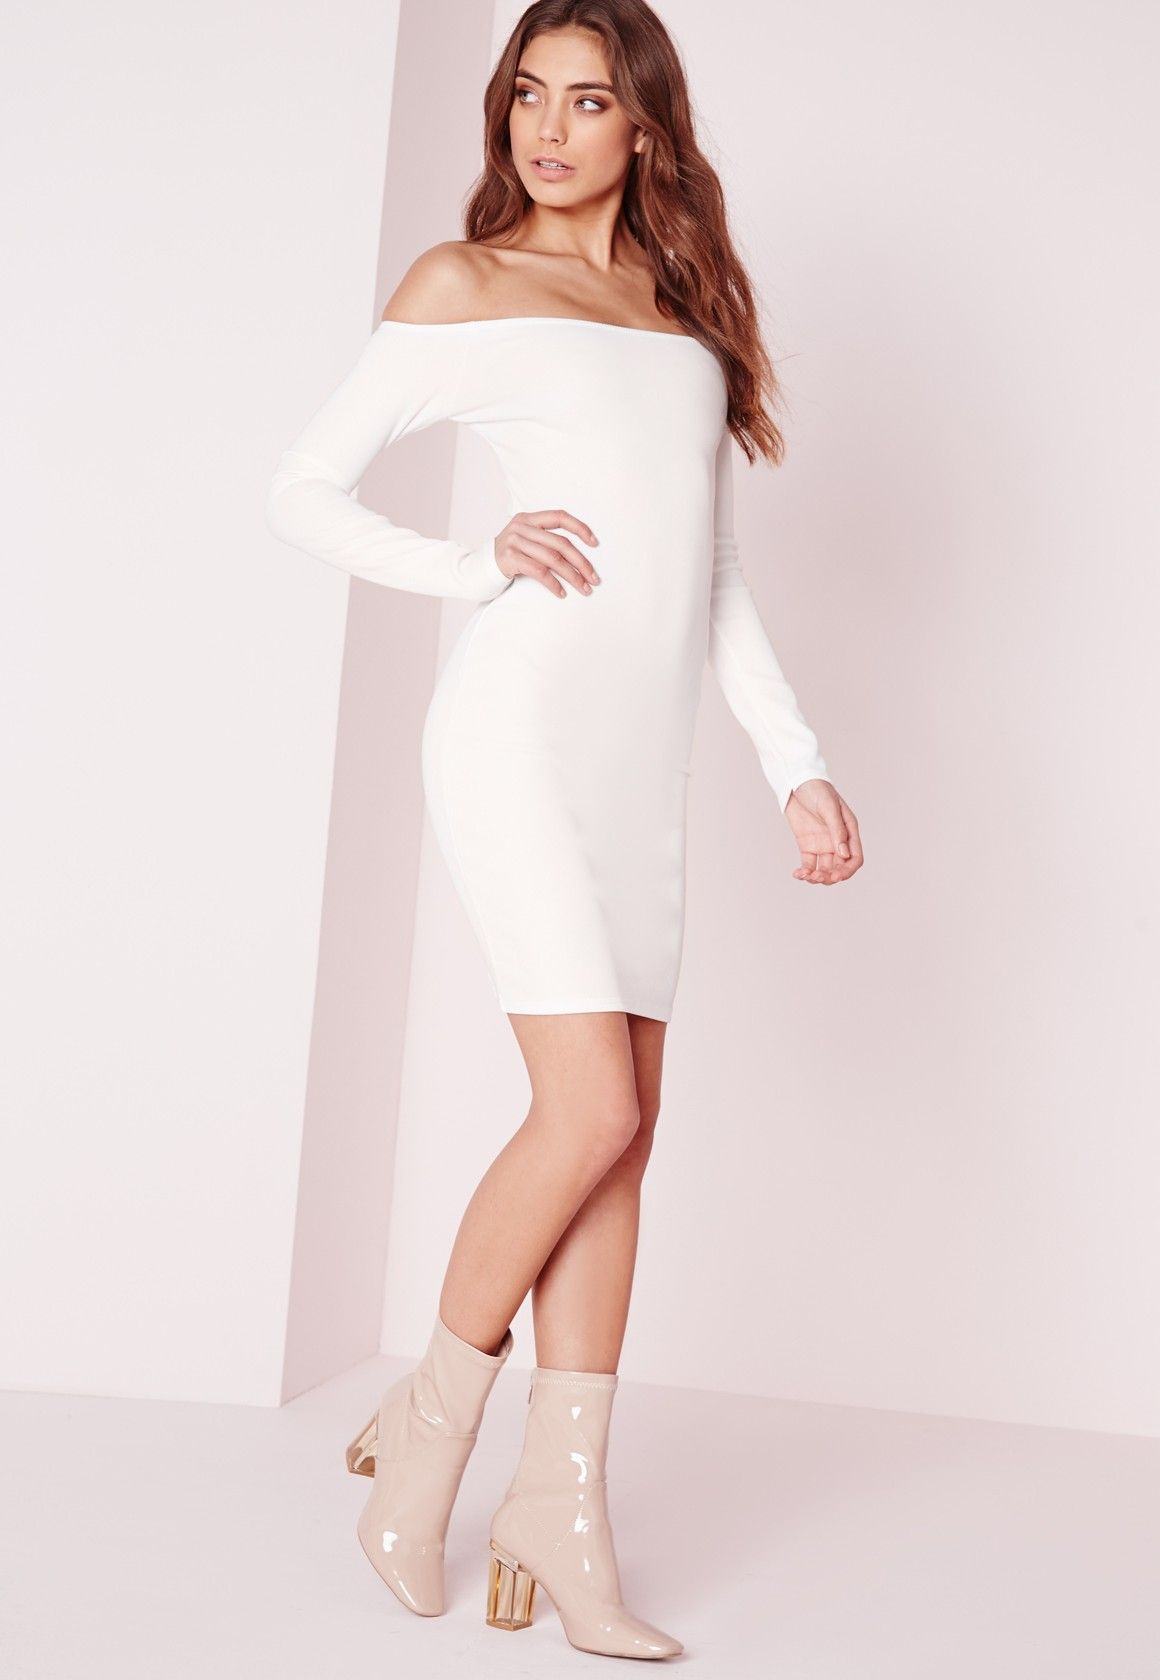 Bodycon dresses are a super-hot addition to any wardrobe and this Bardot LWD will not disappoint. Crank up the heat further with this fierce off the shoulder number and accessorise to the max with piles of chunky jewellery and a pair of stu...